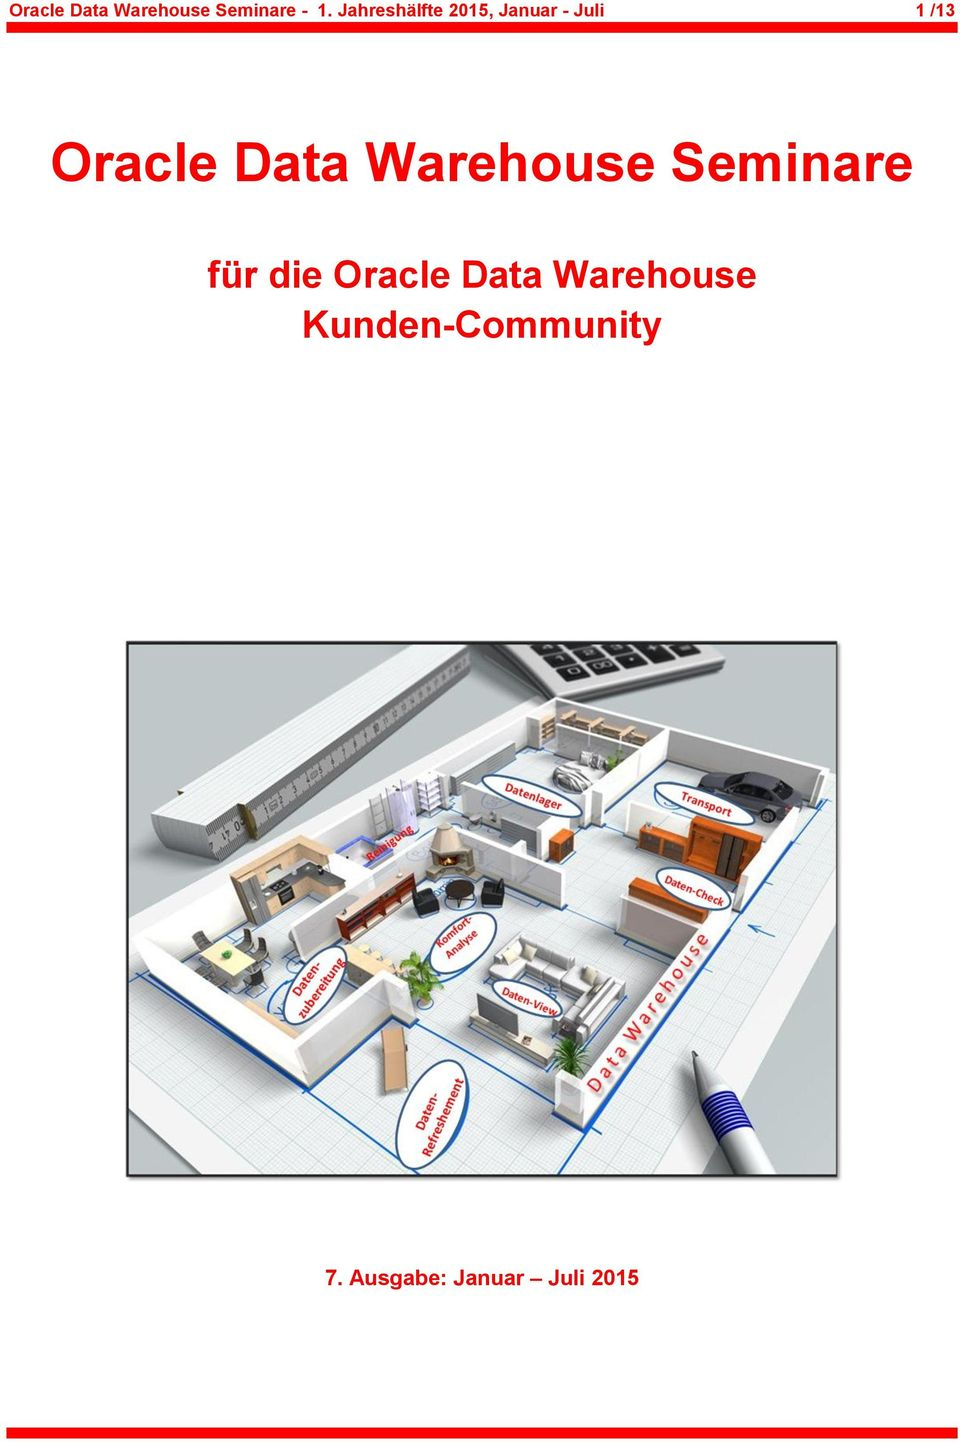 Data Warehouse Seminare für die Oracle Data